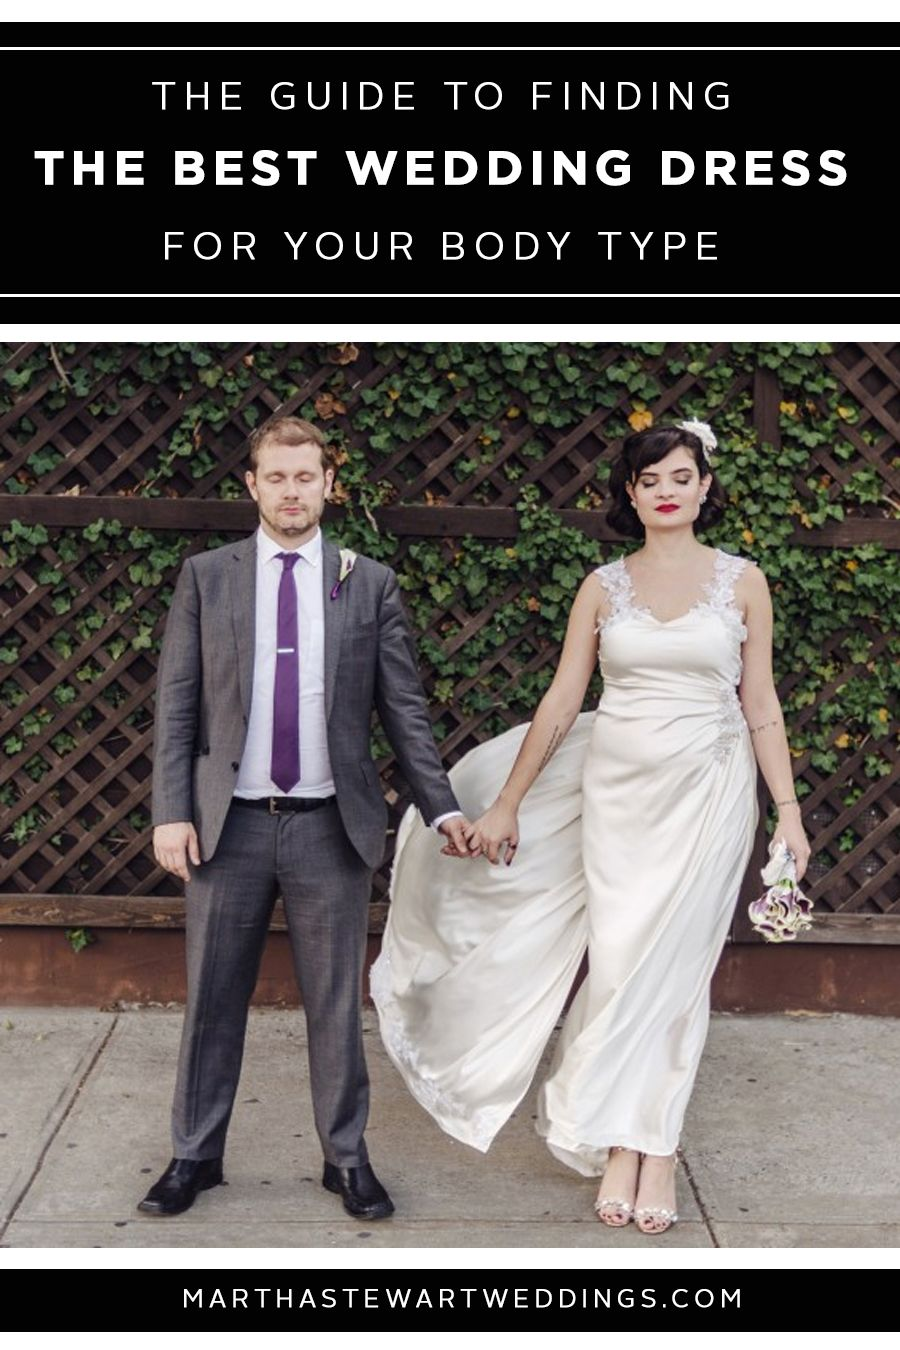 Best wedding dresses for body type  The Guide to Finding the Best Wedding Dress for Your Body Type